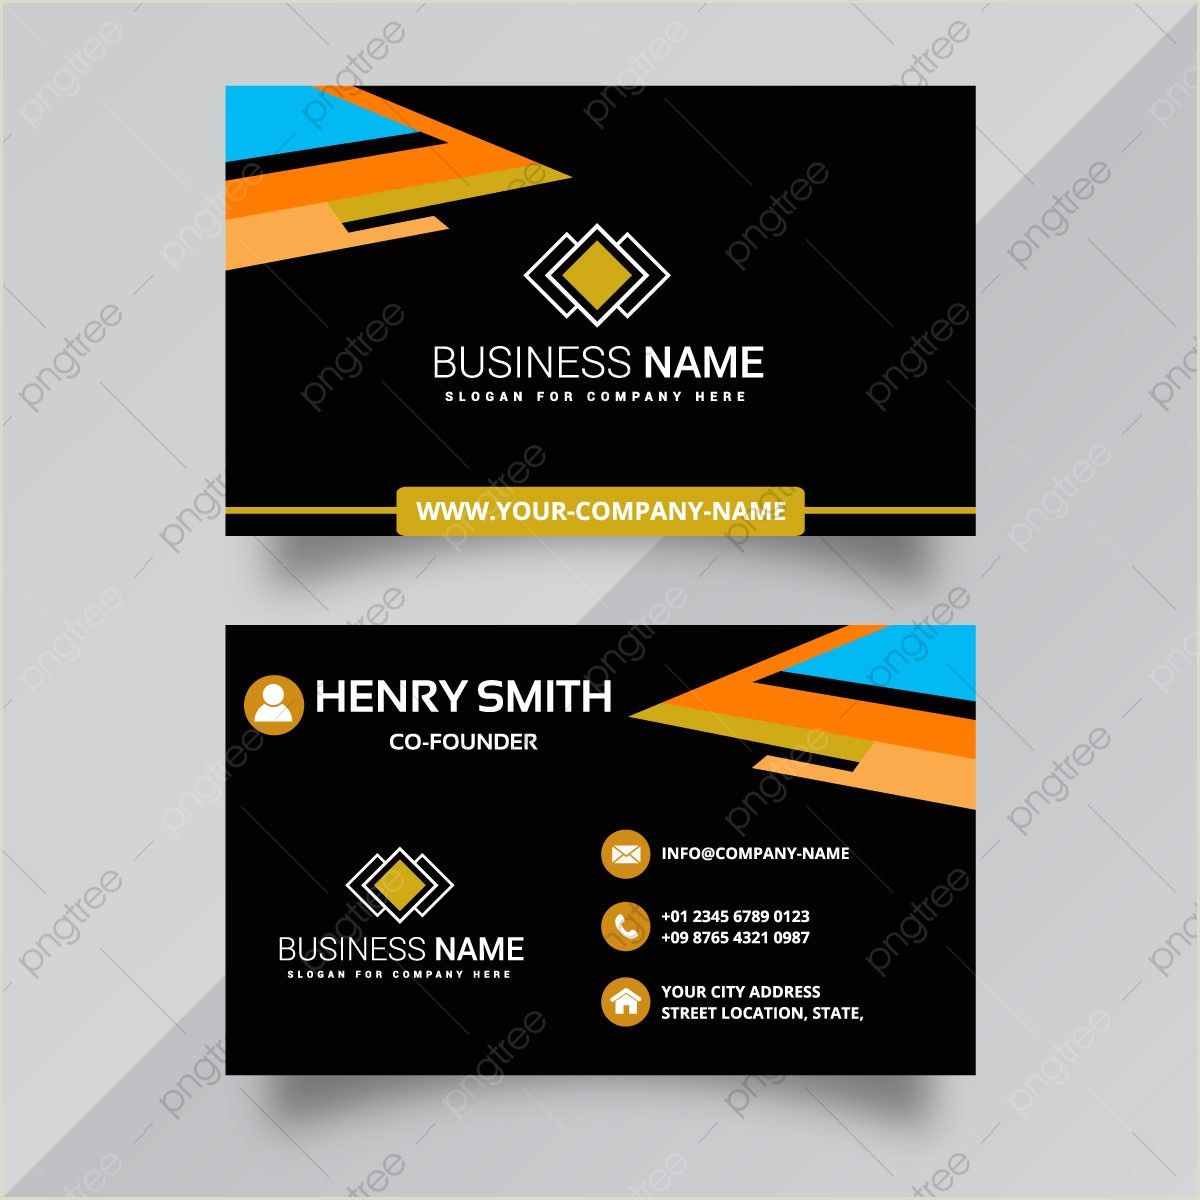 How To Format A Business Card Business Card Format Png